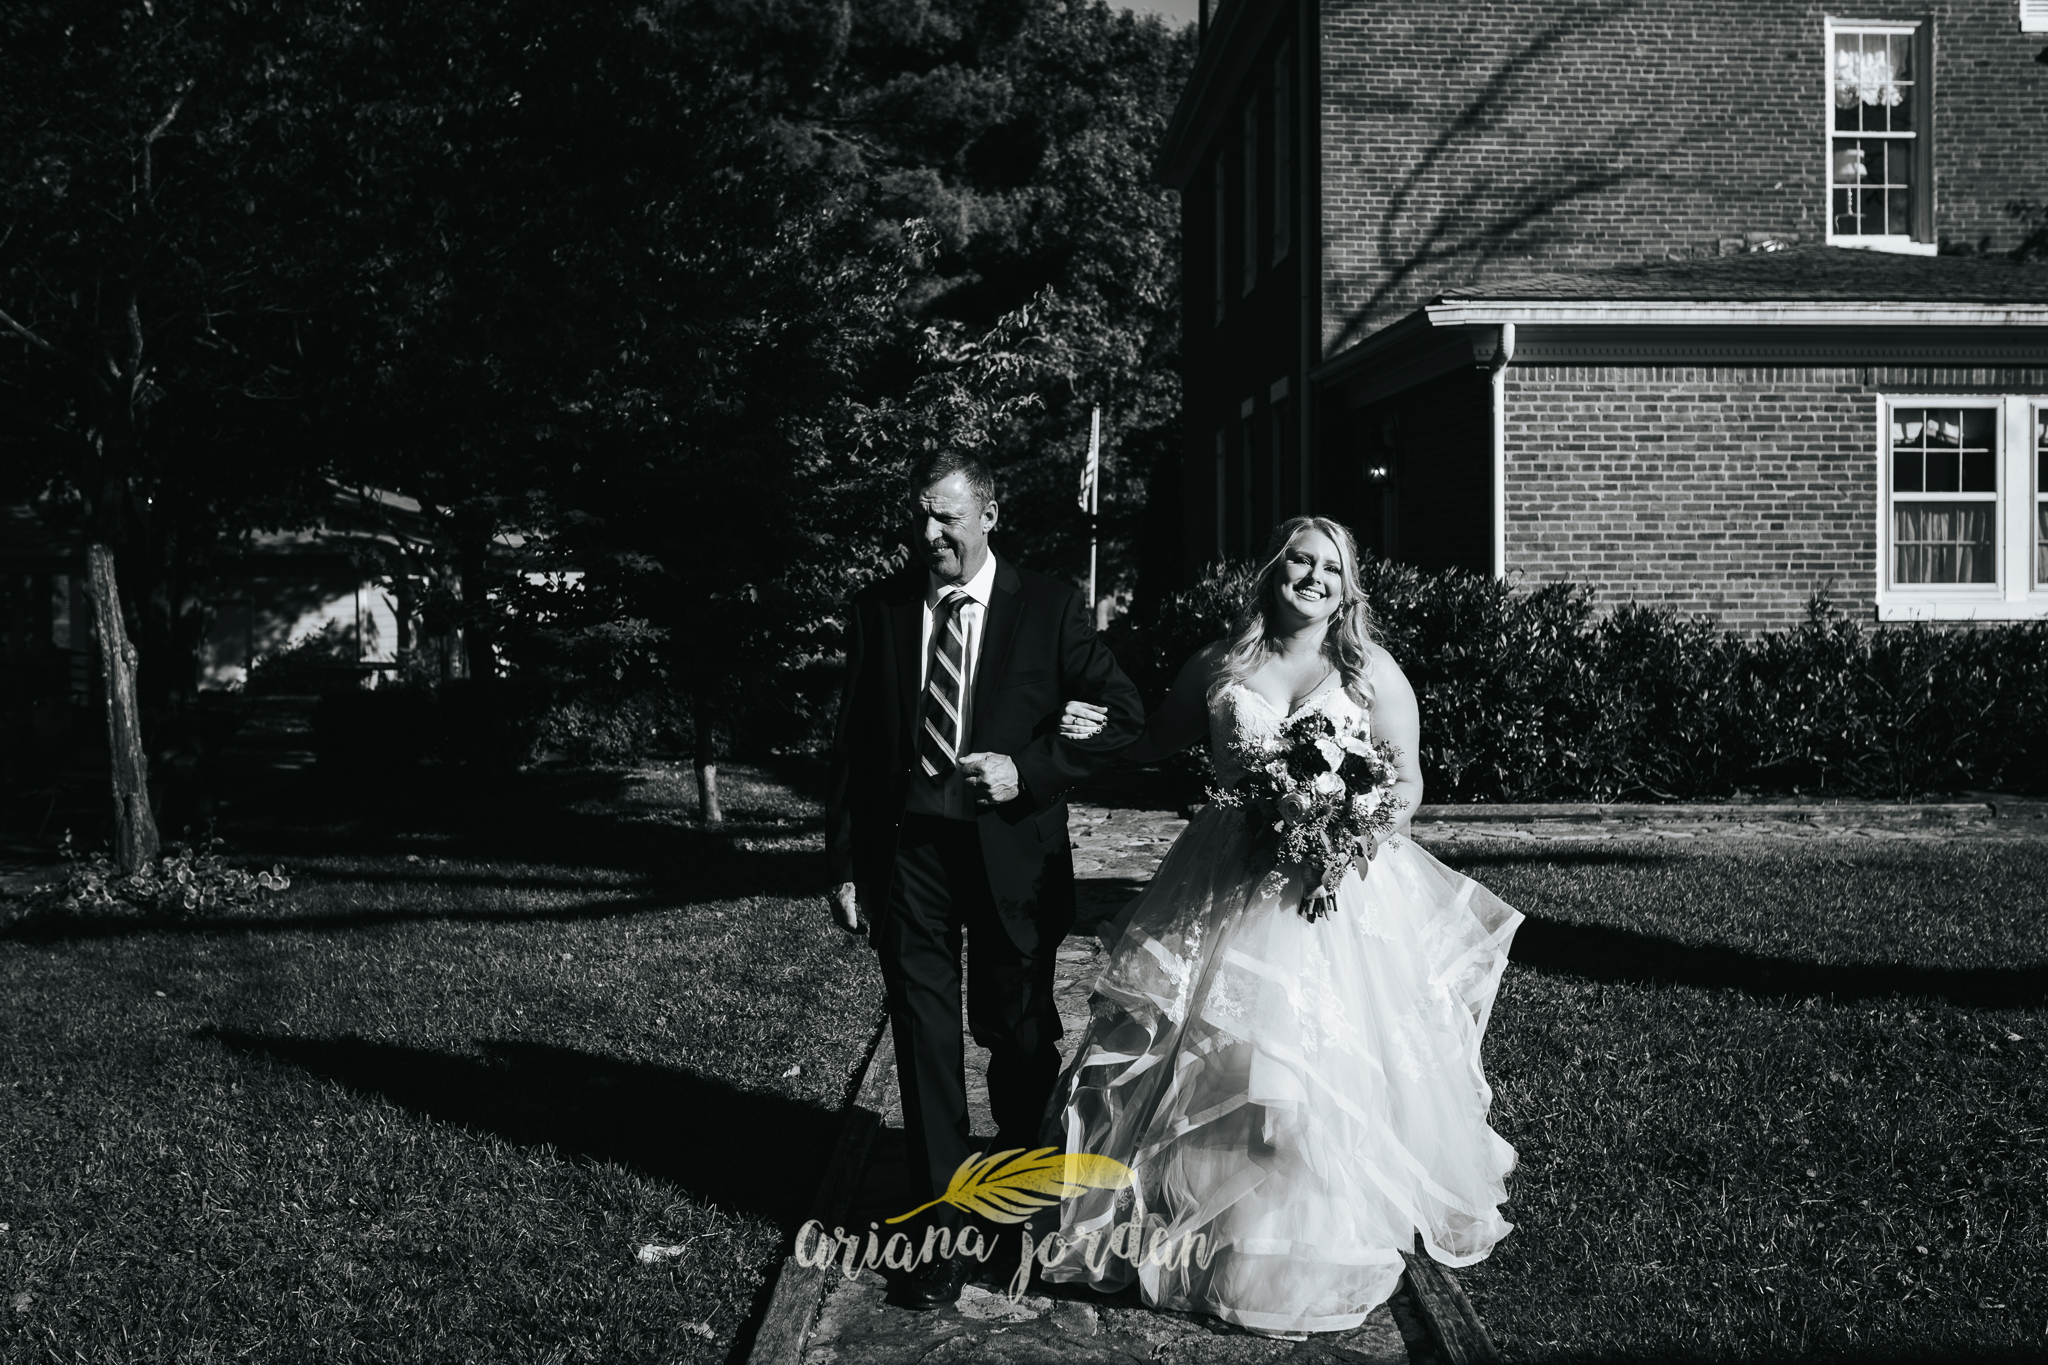 065 Ariana Jordan Photography - Ashley Inn Wedding Photographer 9760.jpg